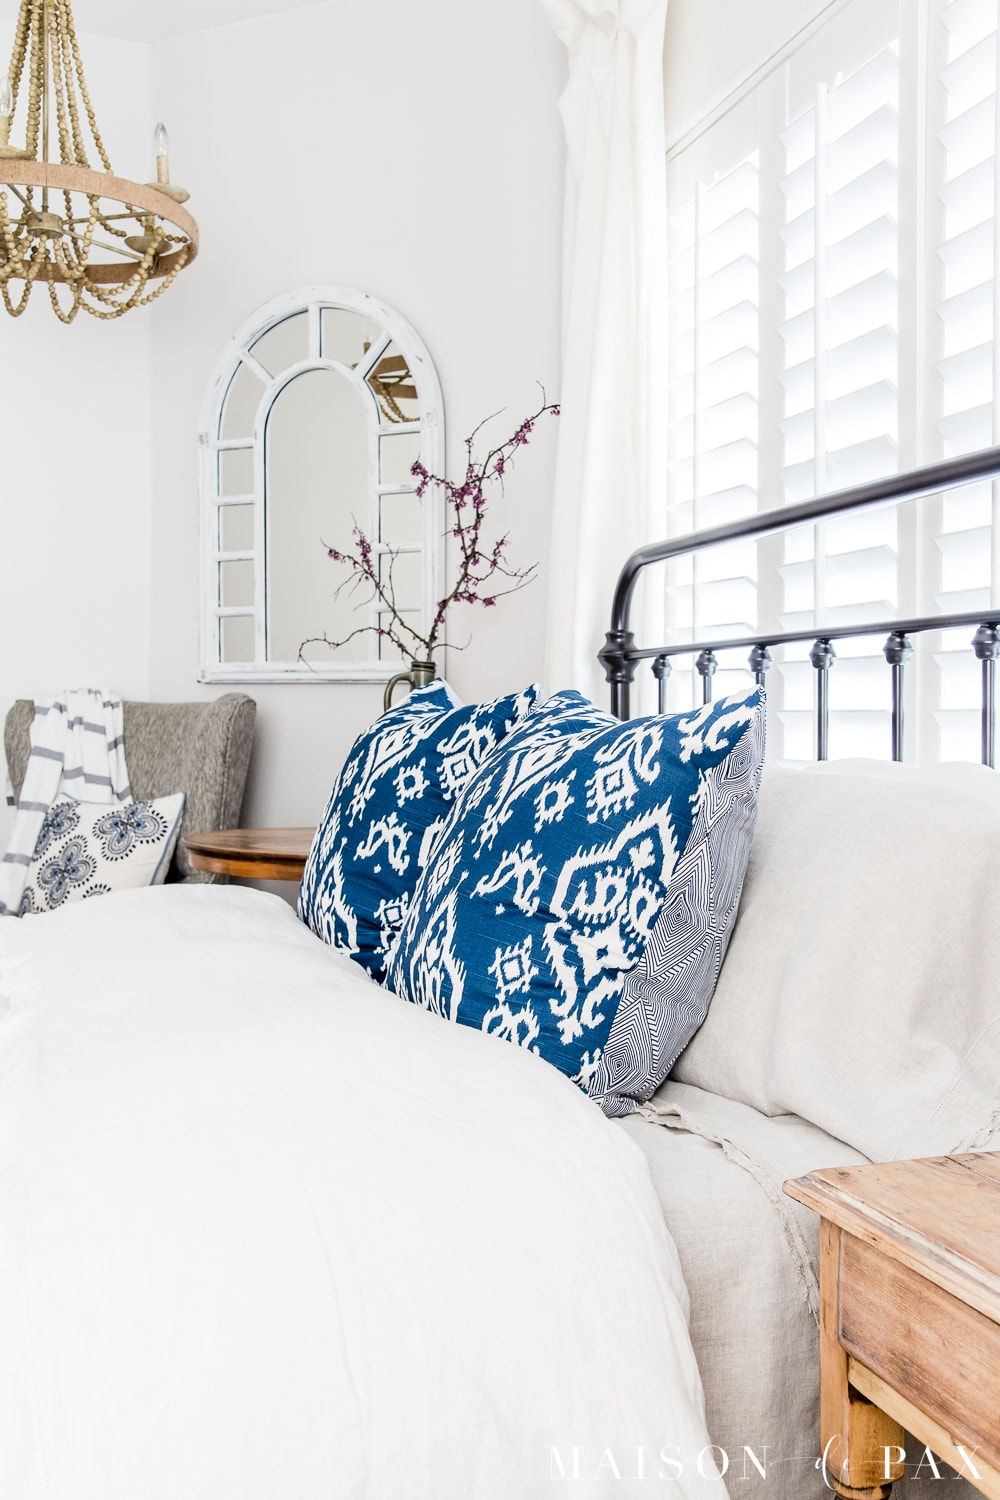 tip #3: accent with colorful pillows... Looking to add a seasonal touch to your bedroom?  Don't miss these incredibly simple master bedroom decorating ideas for spring! #springdecor #springbedroom #nightstand #modernfarmhouse